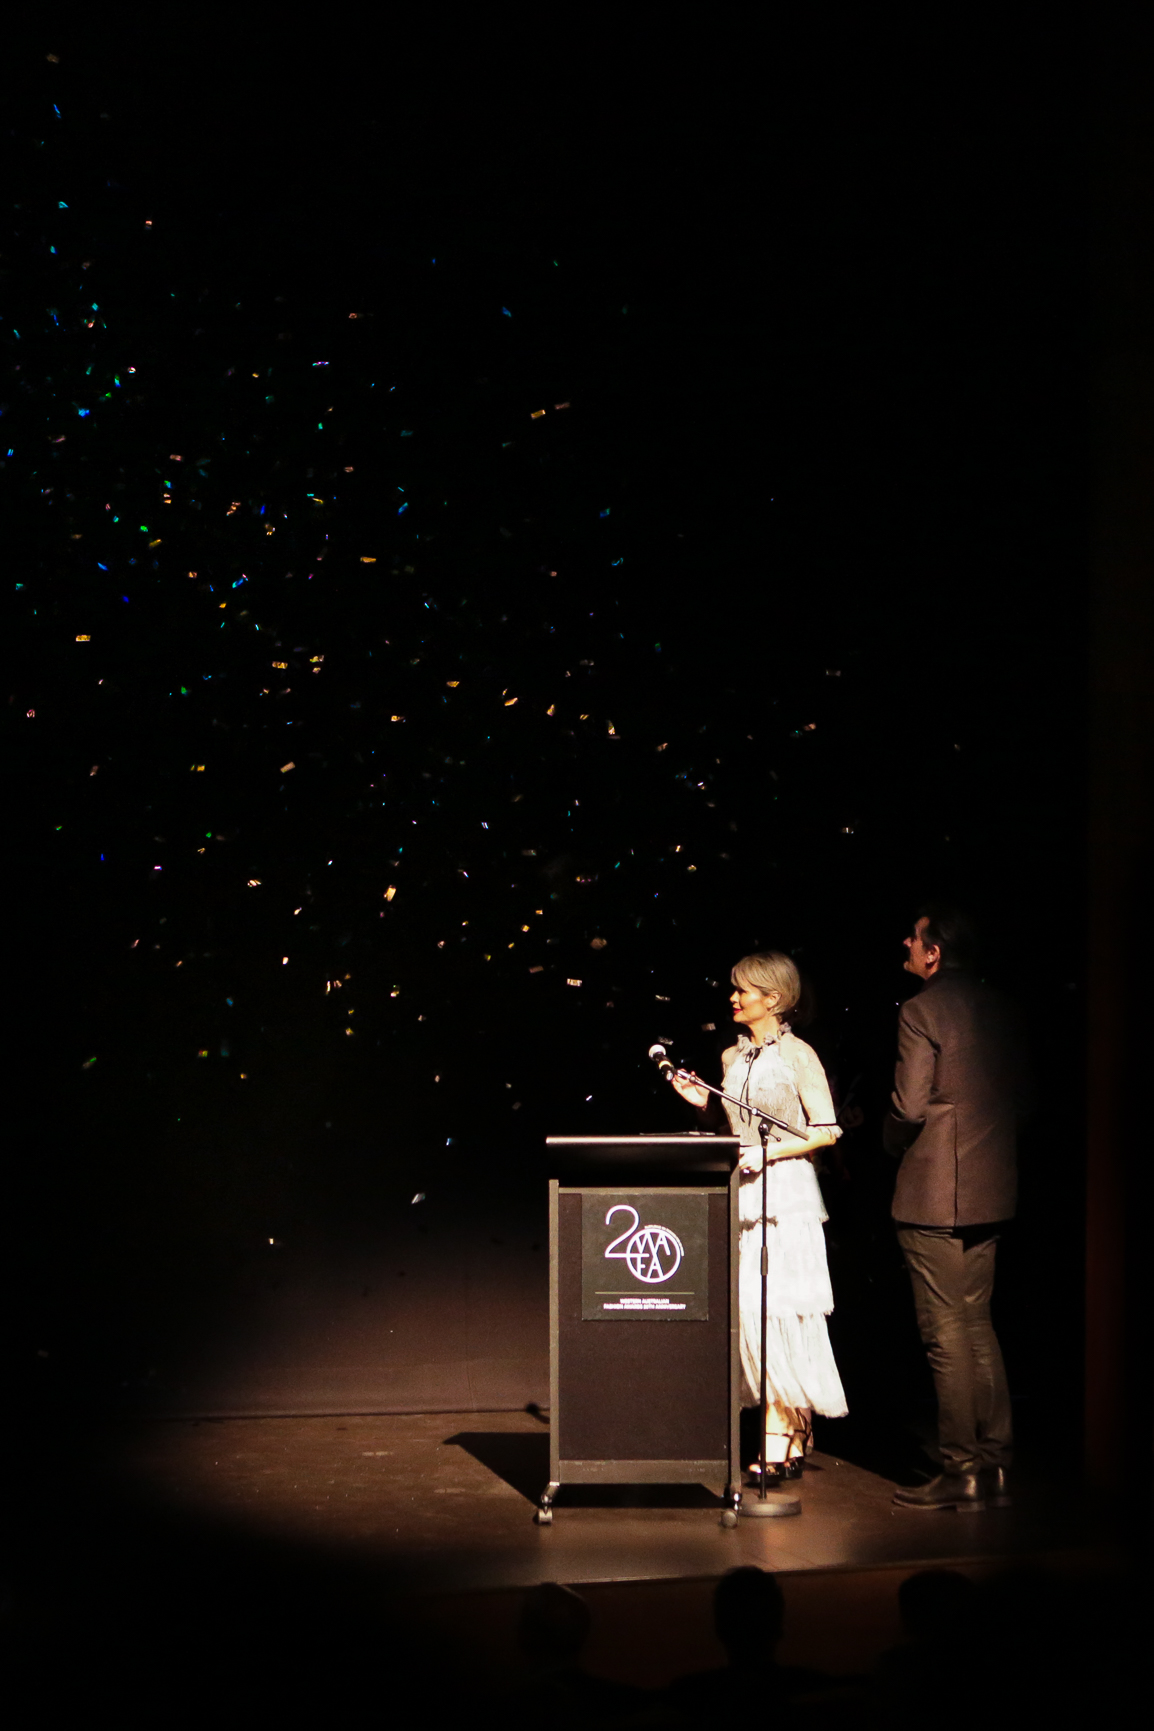 Kylie Radford and husband Richard Poulson, Morrison - Designer of the Year and Stephanie Quinlan Award